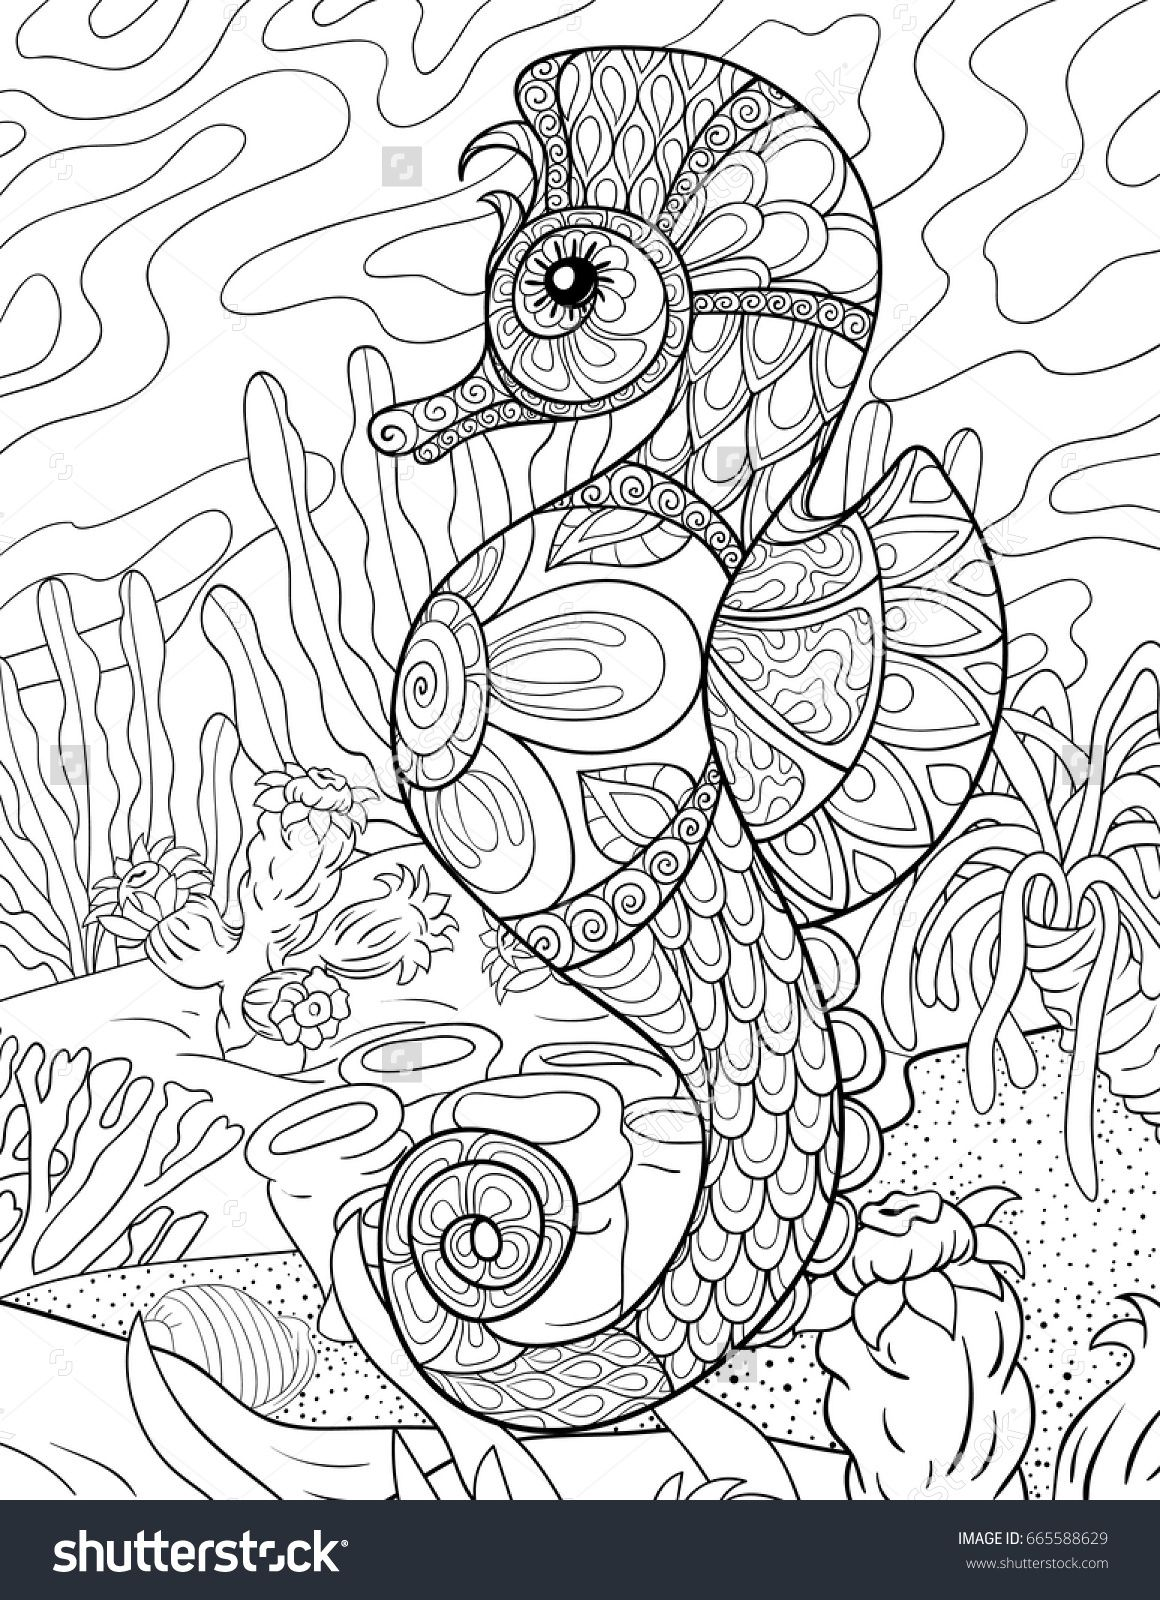 Adult Coloring Page Book A Seahorse With Background Zen Art Style